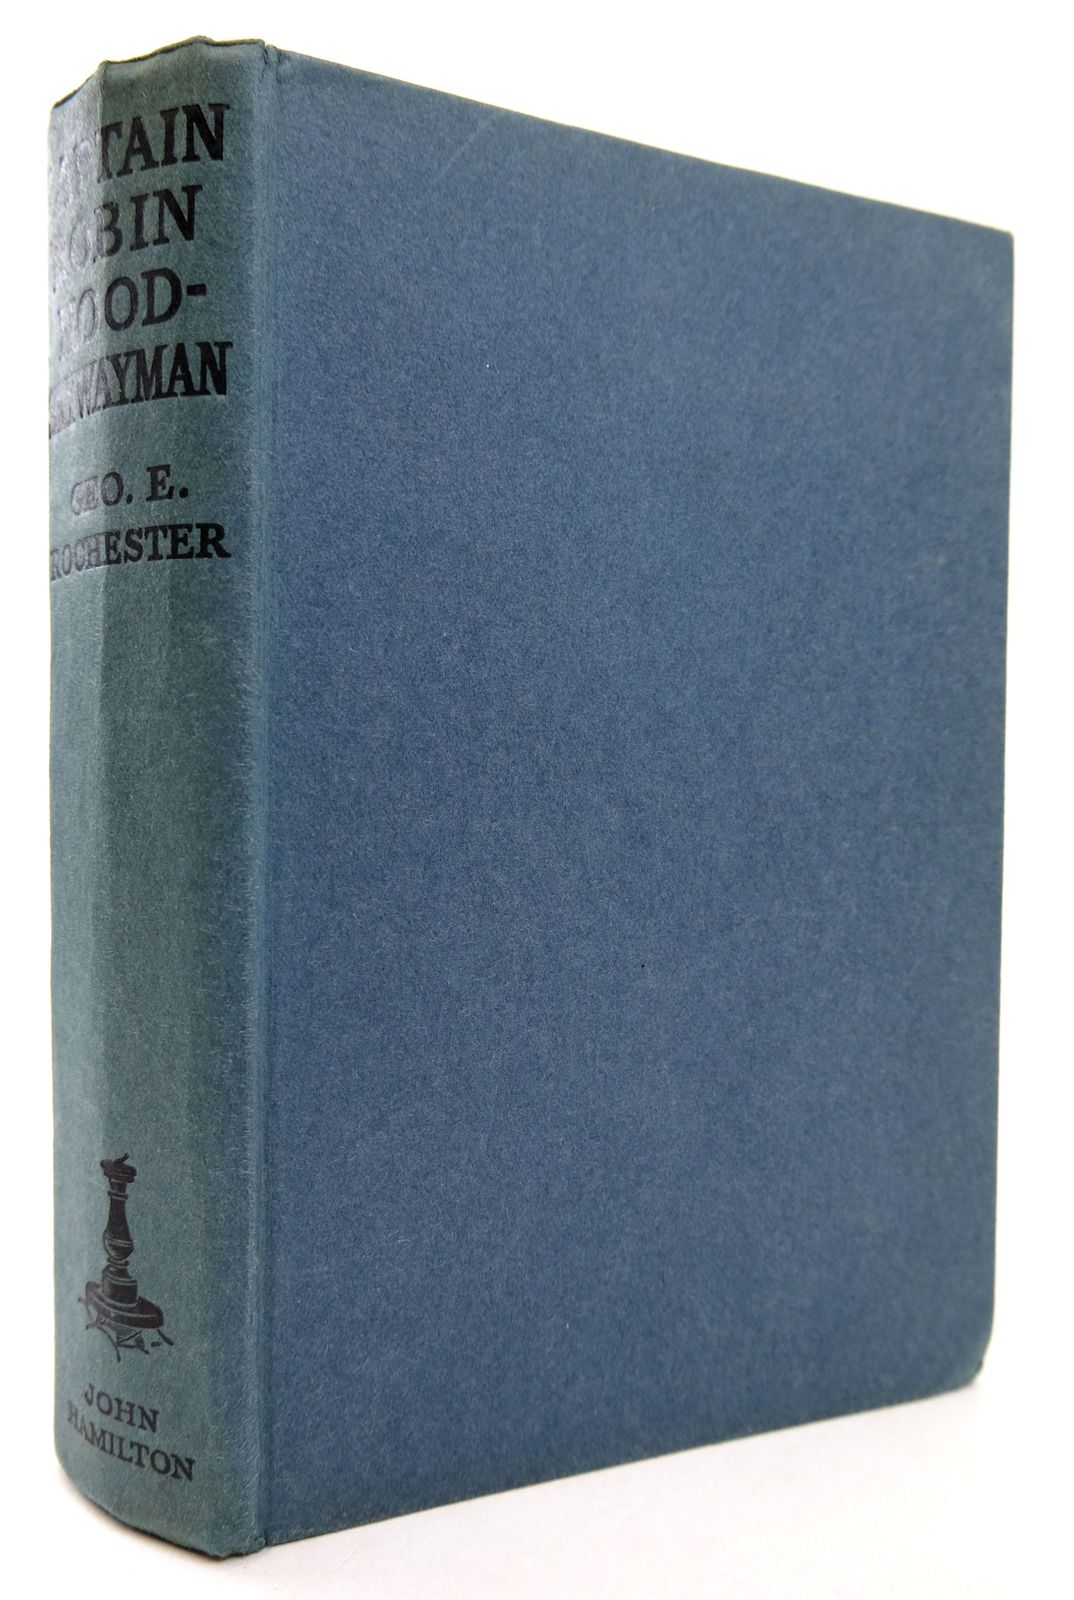 Photo of CAPTAIN ROBIN HOOD SKYWAYMAN written by Rochester, George E. published by John Hamilton Ltd. (STOCK CODE: 1818818)  for sale by Stella & Rose's Books